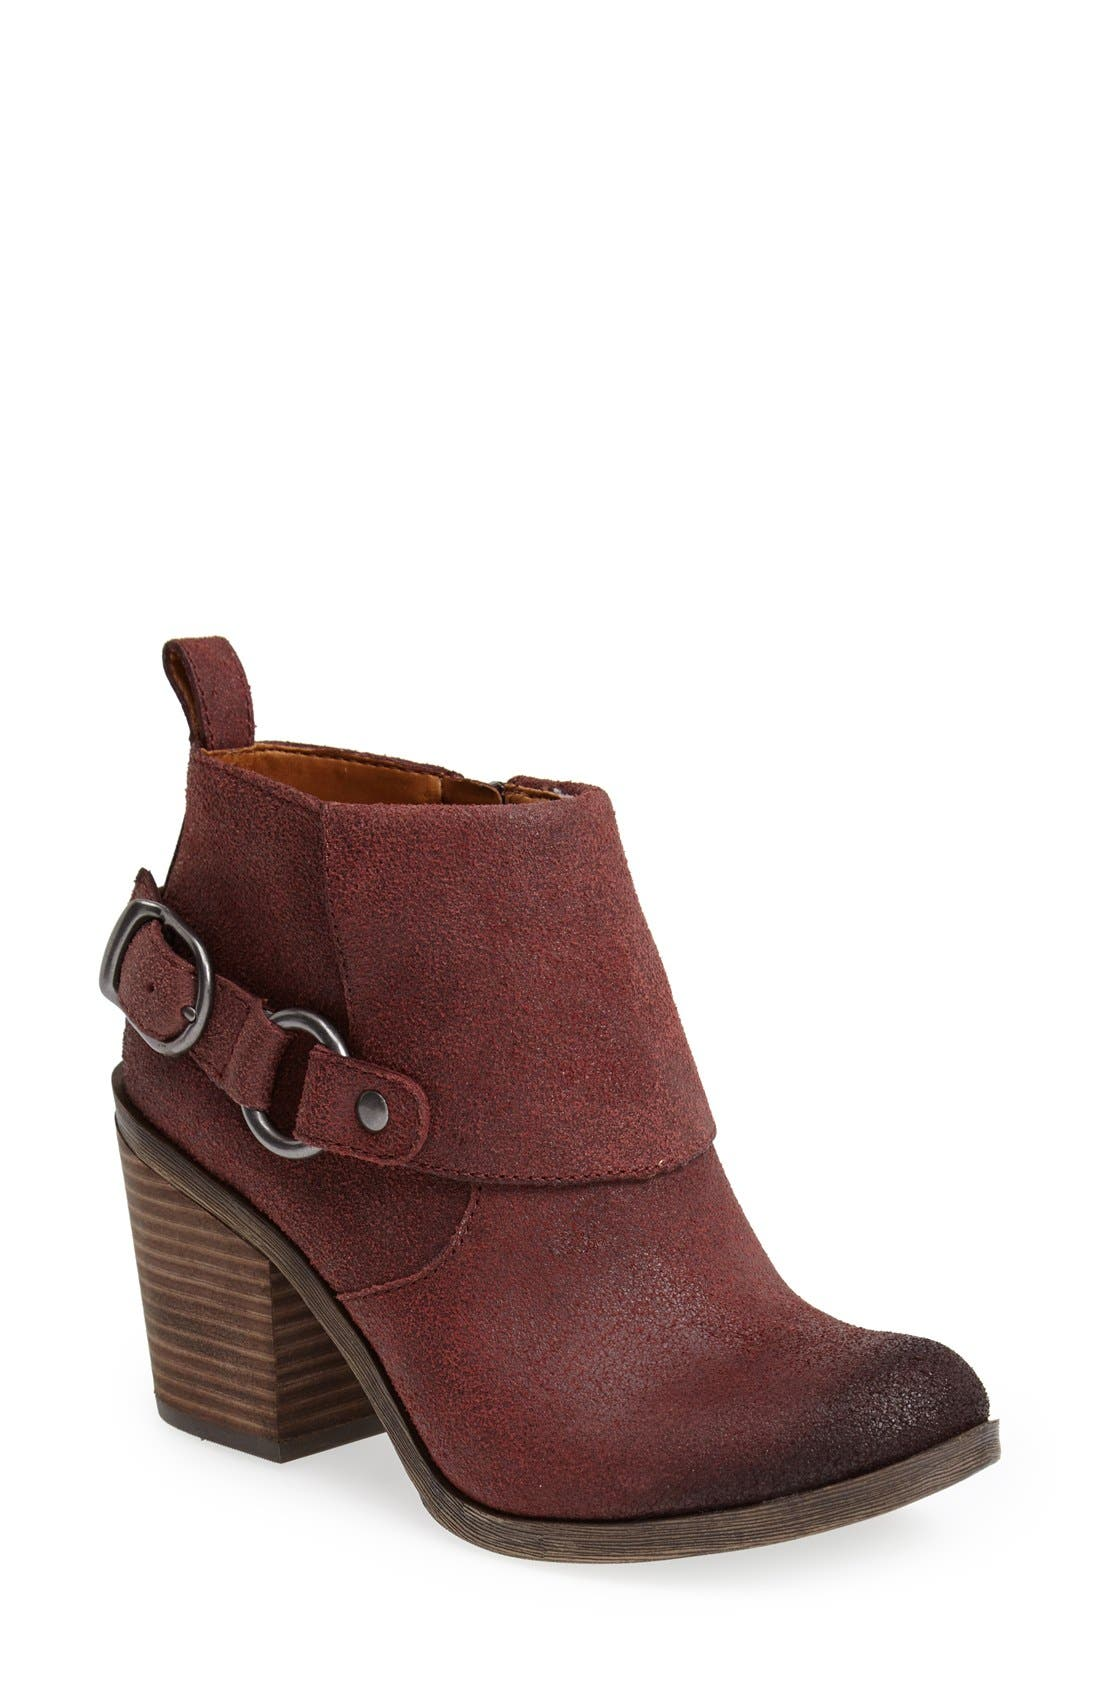 Alternate Image 1 Selected - Lucky Brand 'Oppus' Cuff Bootie (Women)